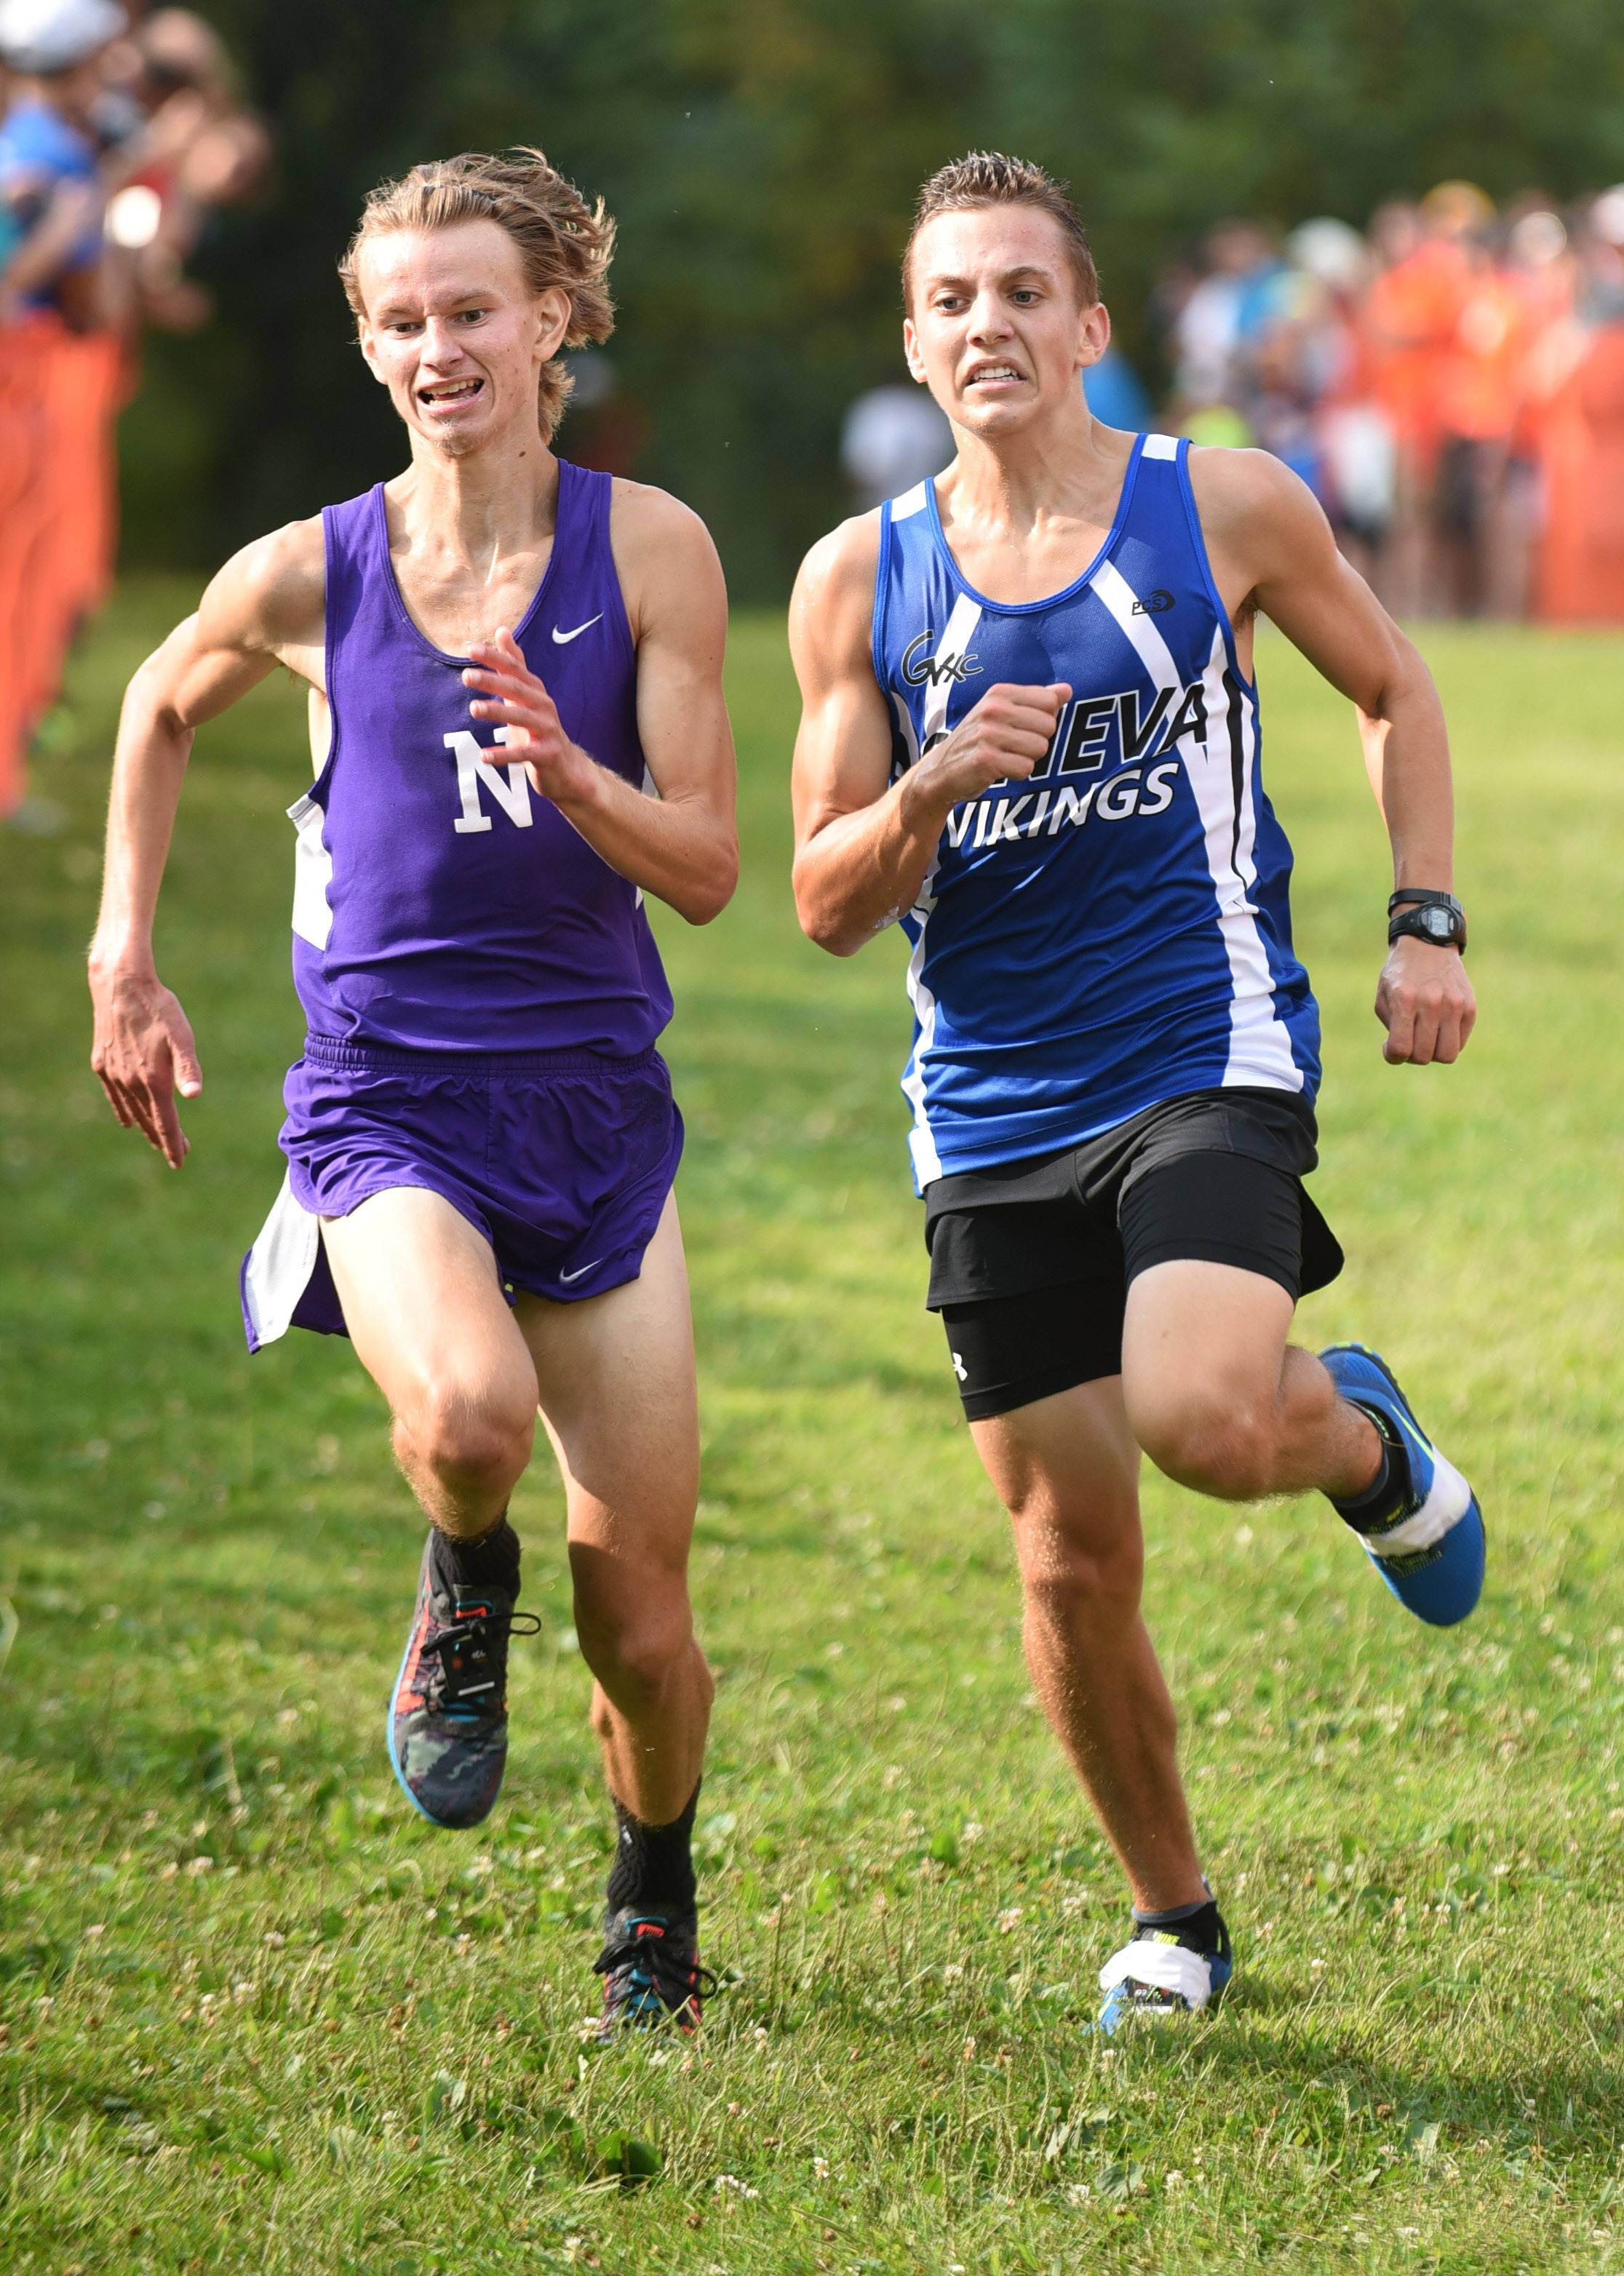 Laura Stoecker/lstoecker@dailyherald.comDowners Grove North's Robbie Prescott, left, and Geneva's Tyler Dau battle to the finish line at the finish line in the boys varsity run in the St. Charles East Leavey Invitational at LeRoy Oakes Forest Preserve in St. Charles Saturday. Prescott was later disqualified for using his arm to try and hold back Dau from finishing before him.